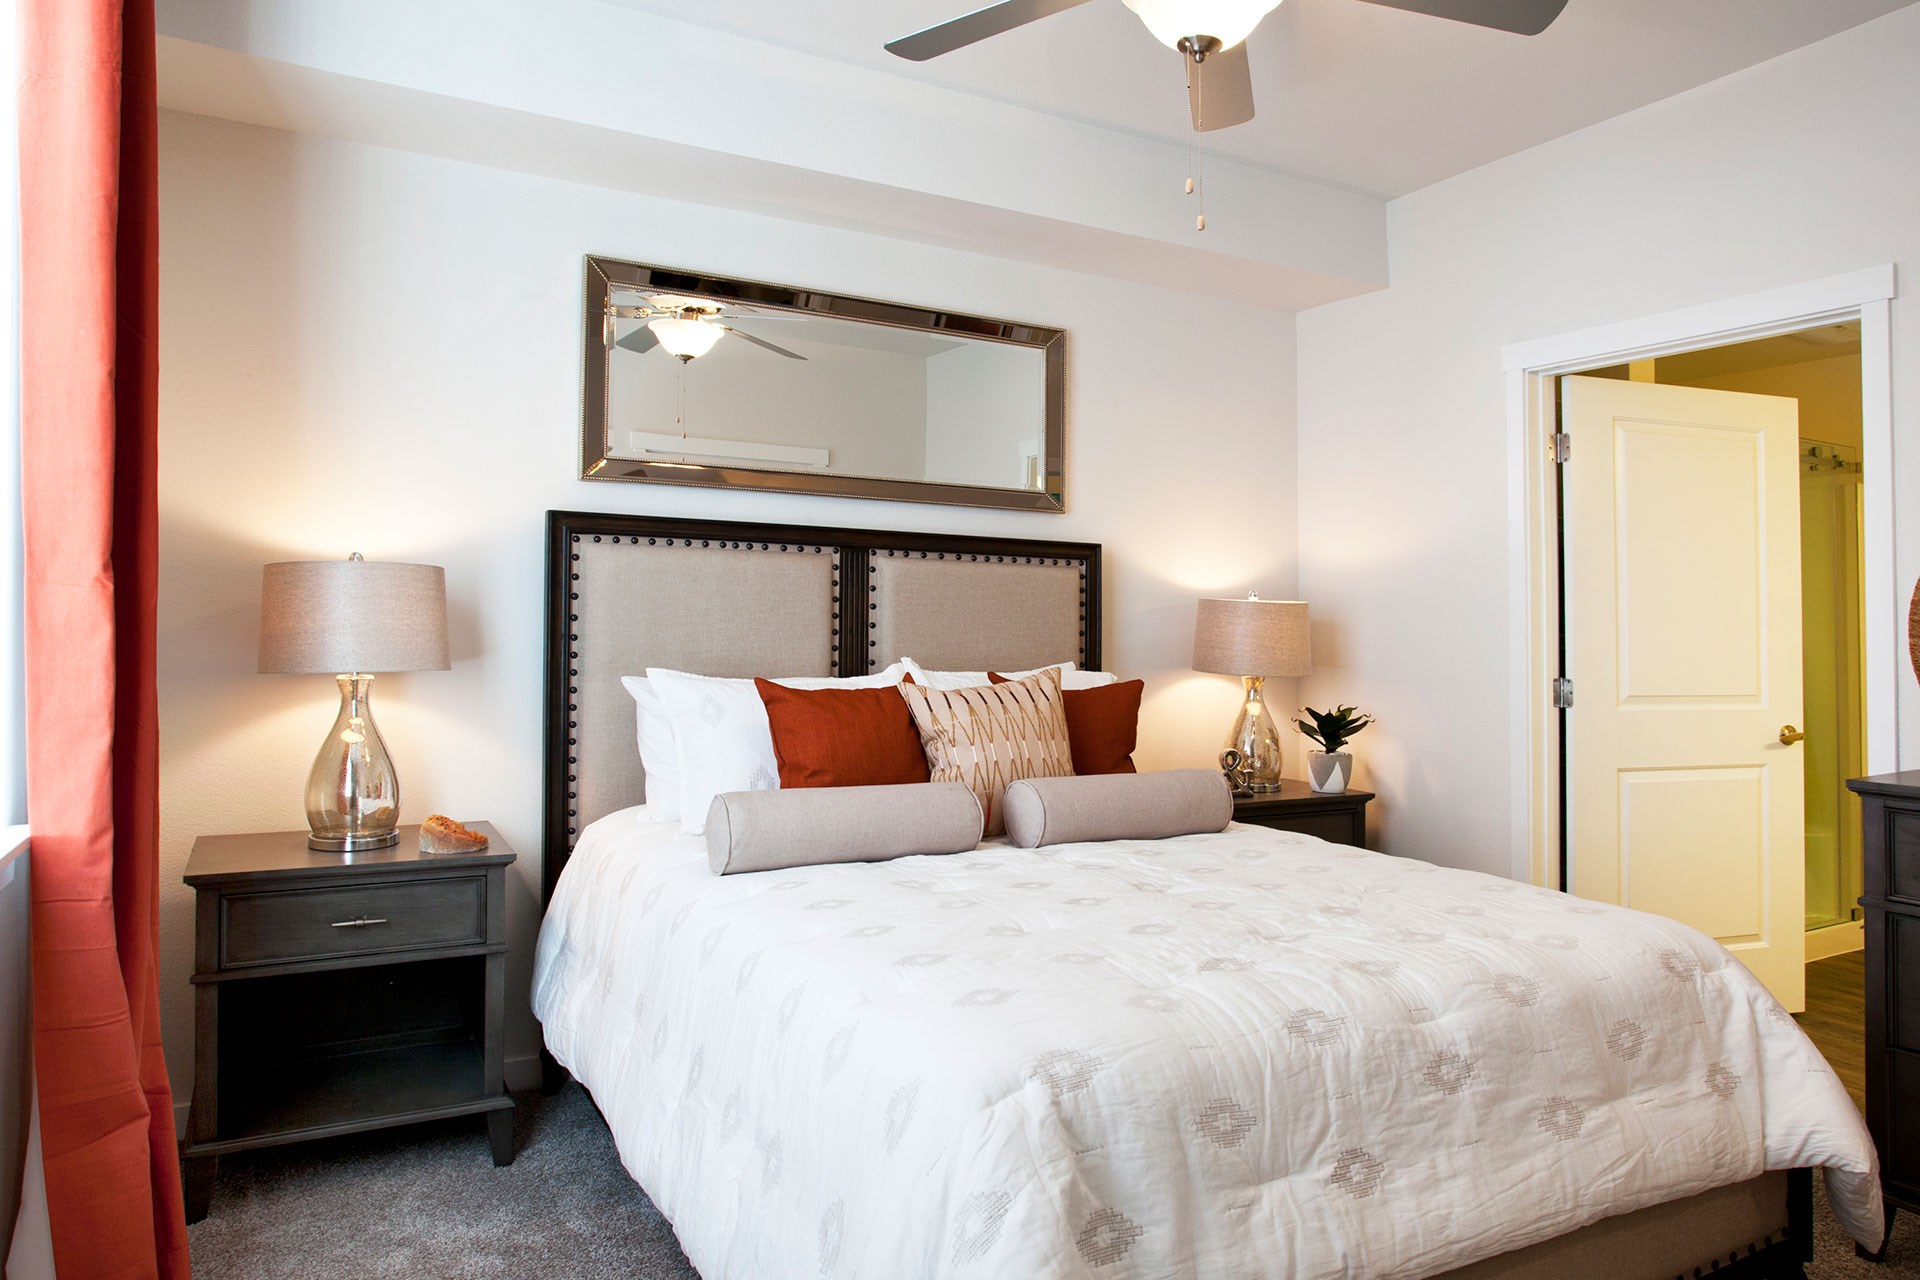 Pine Valley Ranch Apartments Model Bedroom and Ceiling Fan